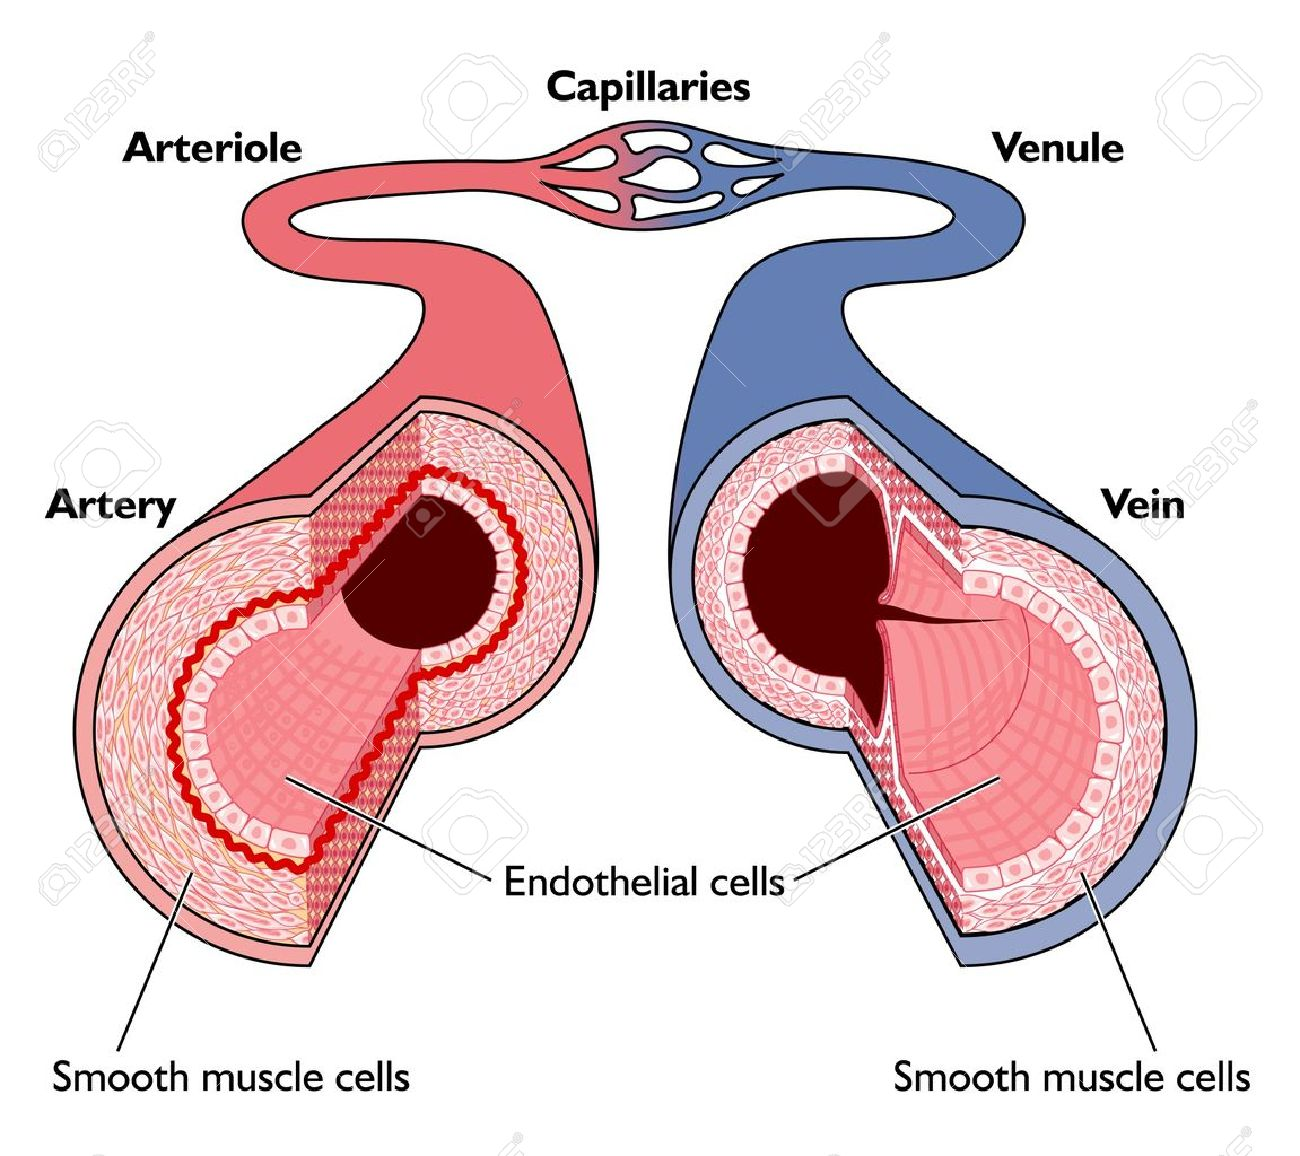 Cross Section of Veins Arteries And Capillaries Cross Section of Artery And